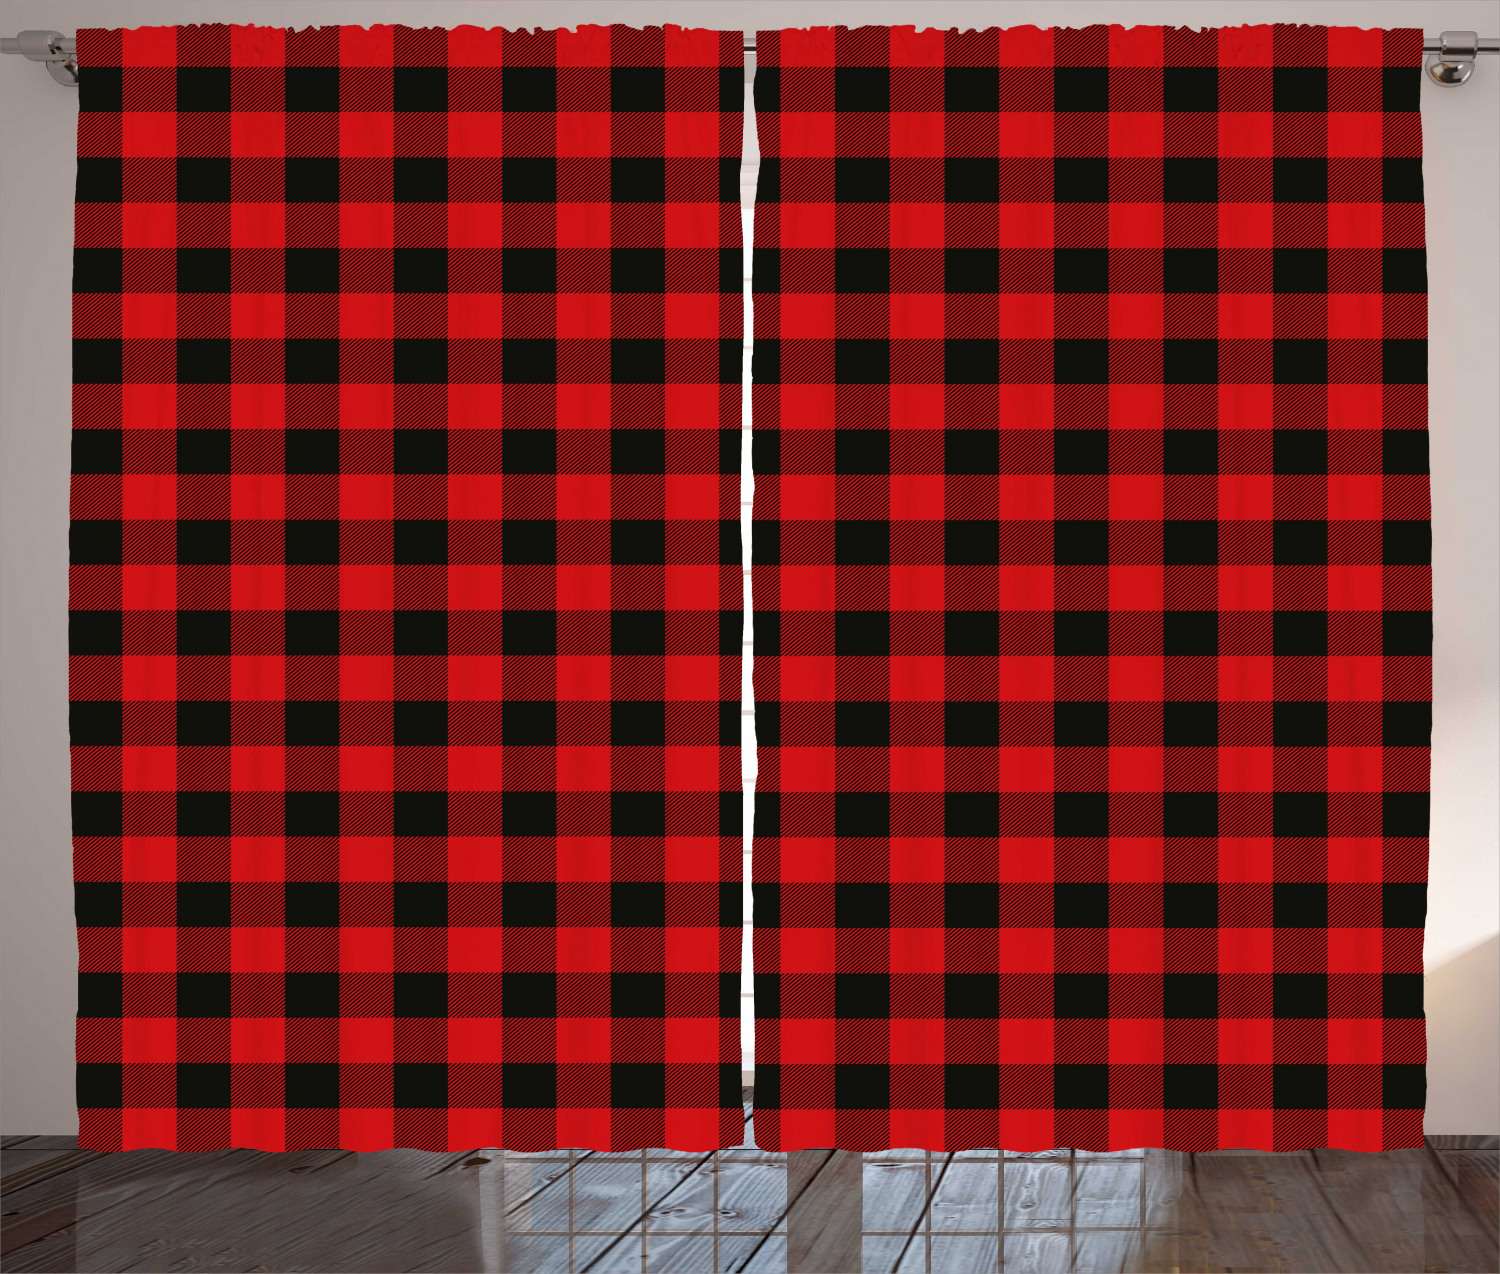 red plaid curtains 2 panels set lumberjack clothing inspired square pattern checkered grid style quilt design window drapes for living room bedroom